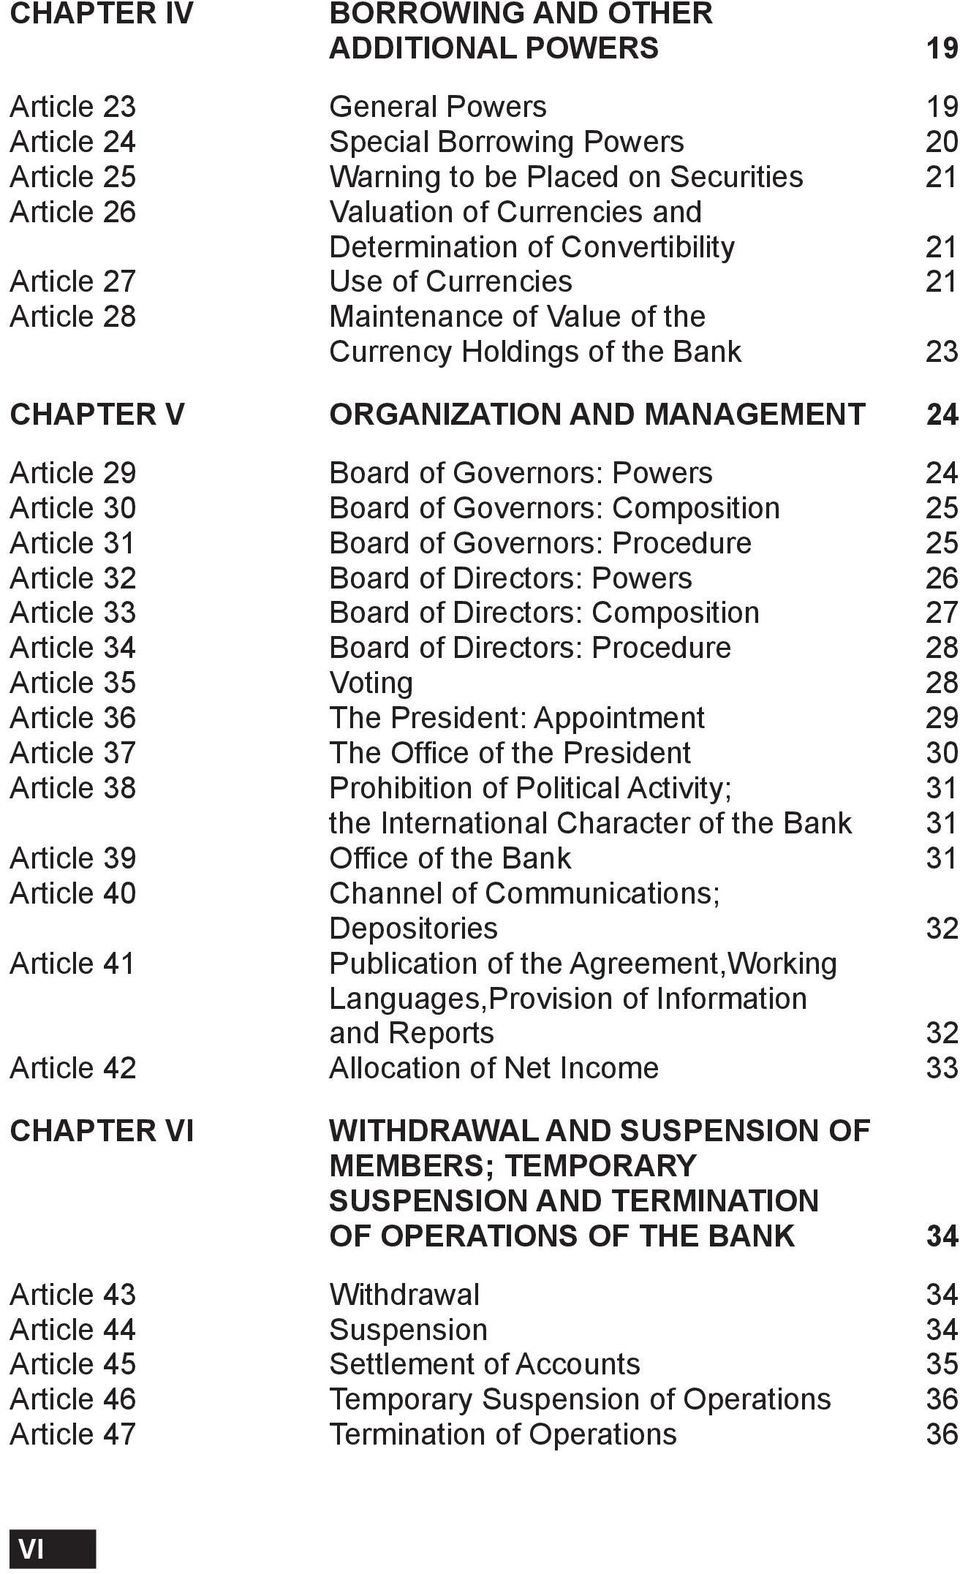 Article 29 Board of Governors: Powers 24 Article 30 Board of Governors: Composition 25 Article 31 Board of Governors: Procedure 25 Article 32 Board of Directors: Powers 26 Article 33 Board of